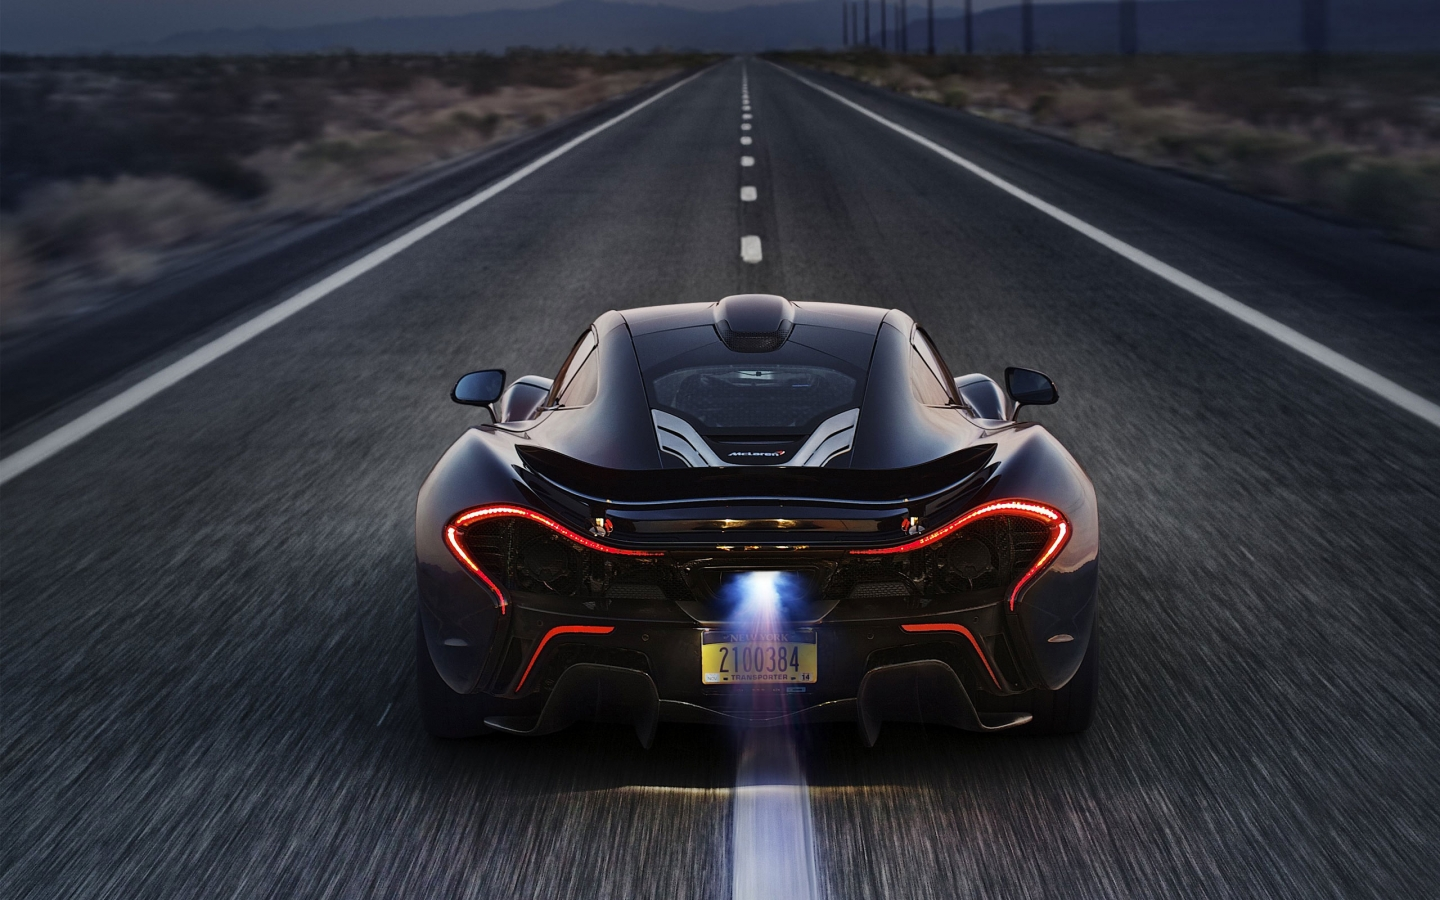 2014 McLaren P1 for 1440 x 900 widescreen resolution